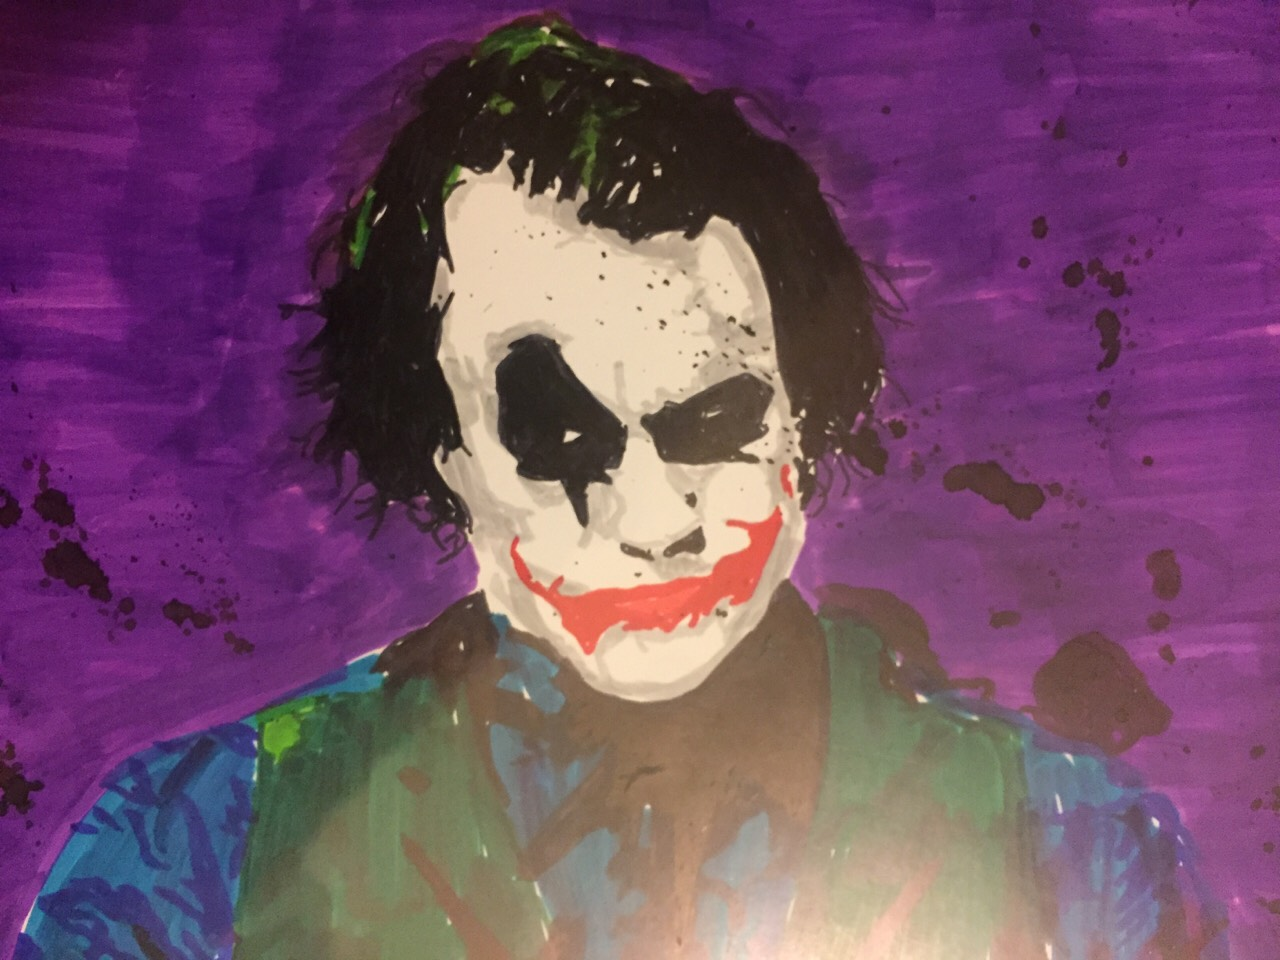 Joker (make by AWOL Blythe crowe stencil artist)